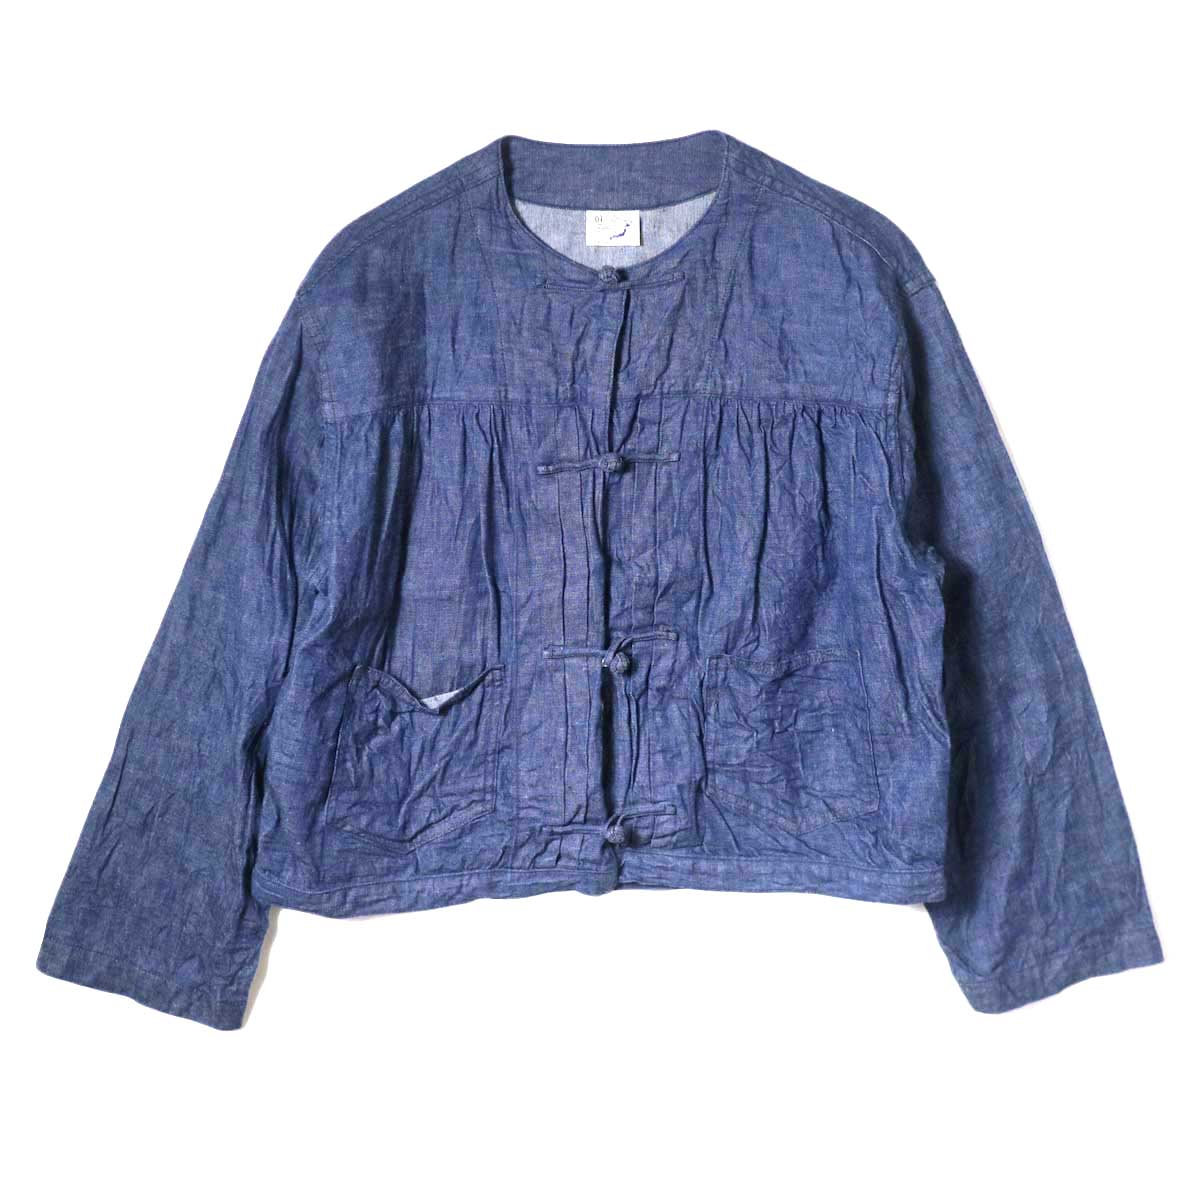 orSlow / Frog Button Denim Shorts Jacket